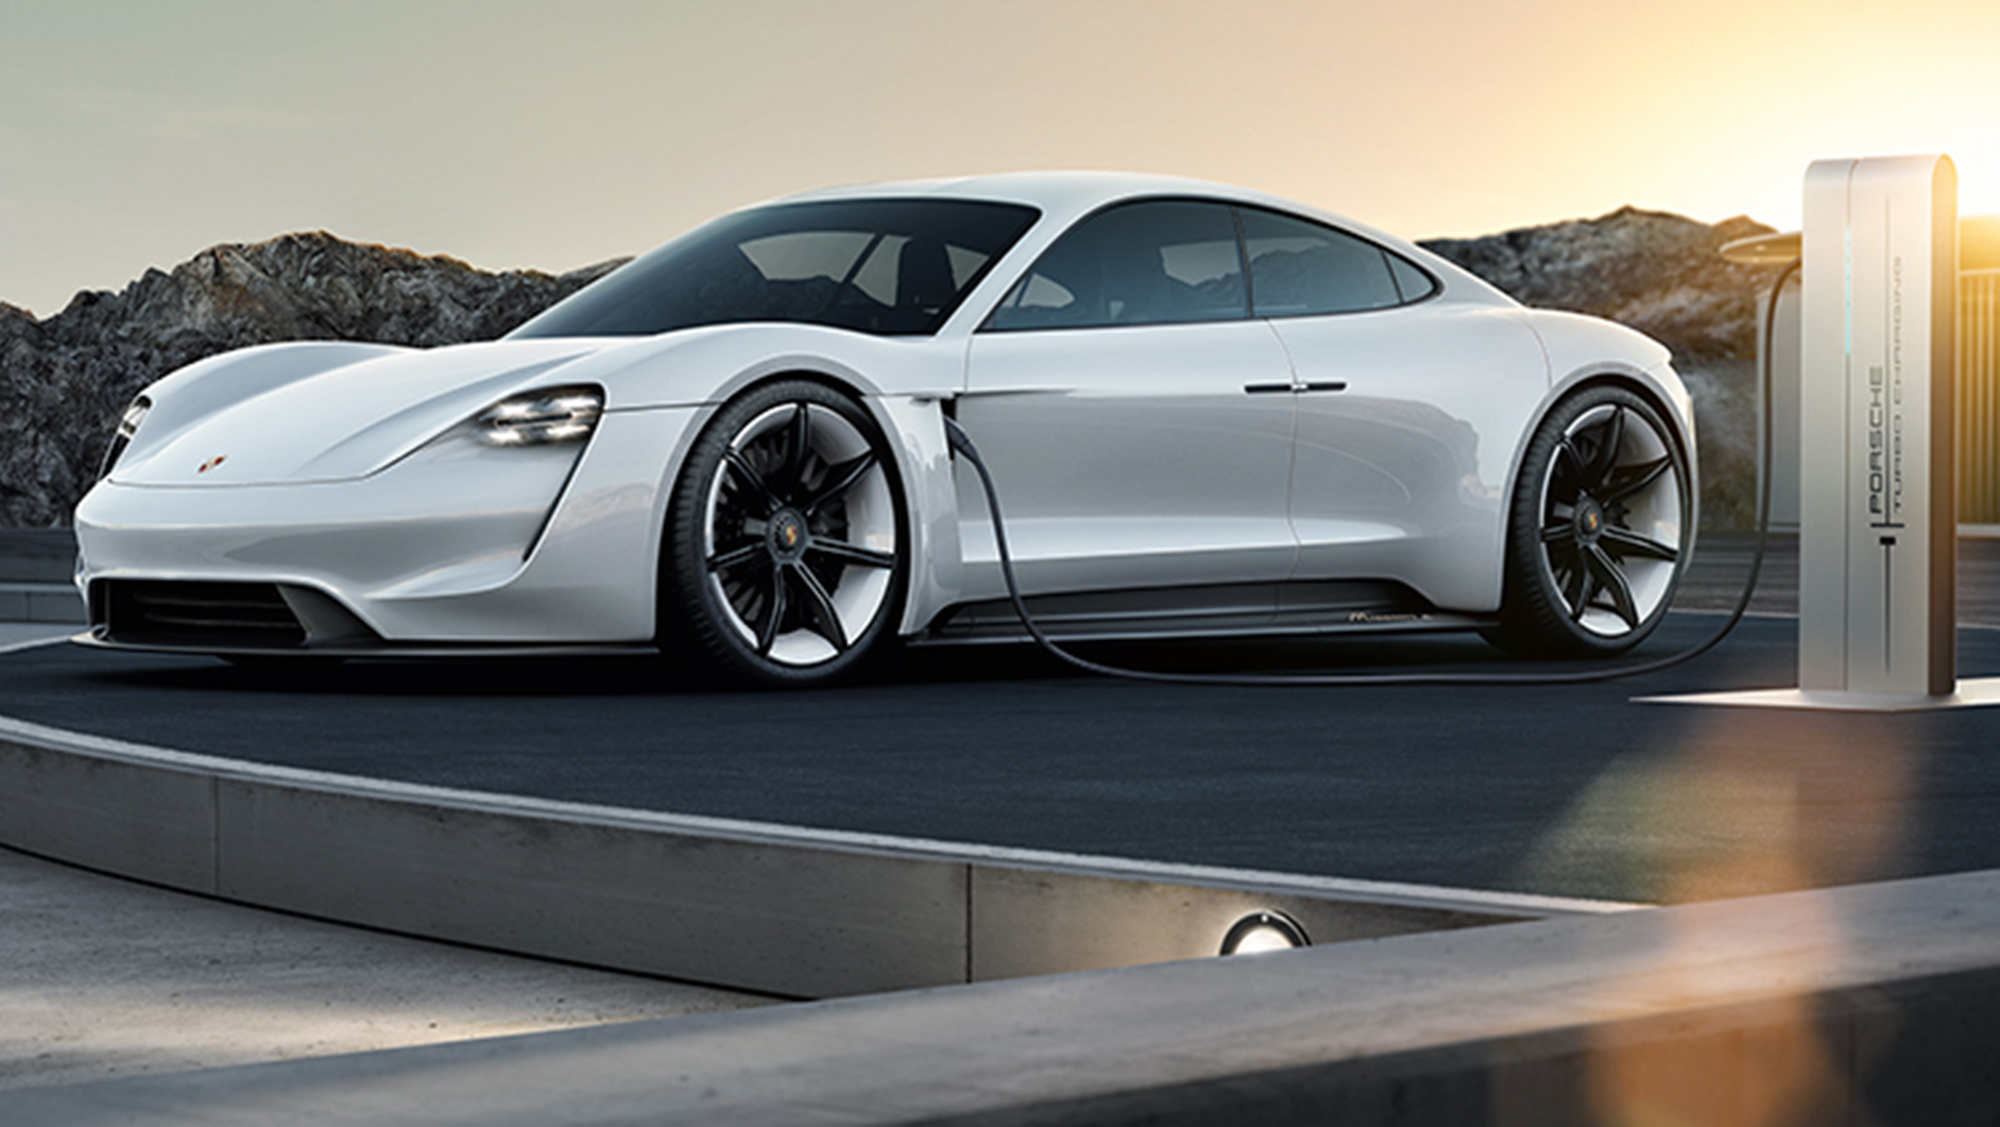 Porsche doubles electric mobility investment to more than €6 billion